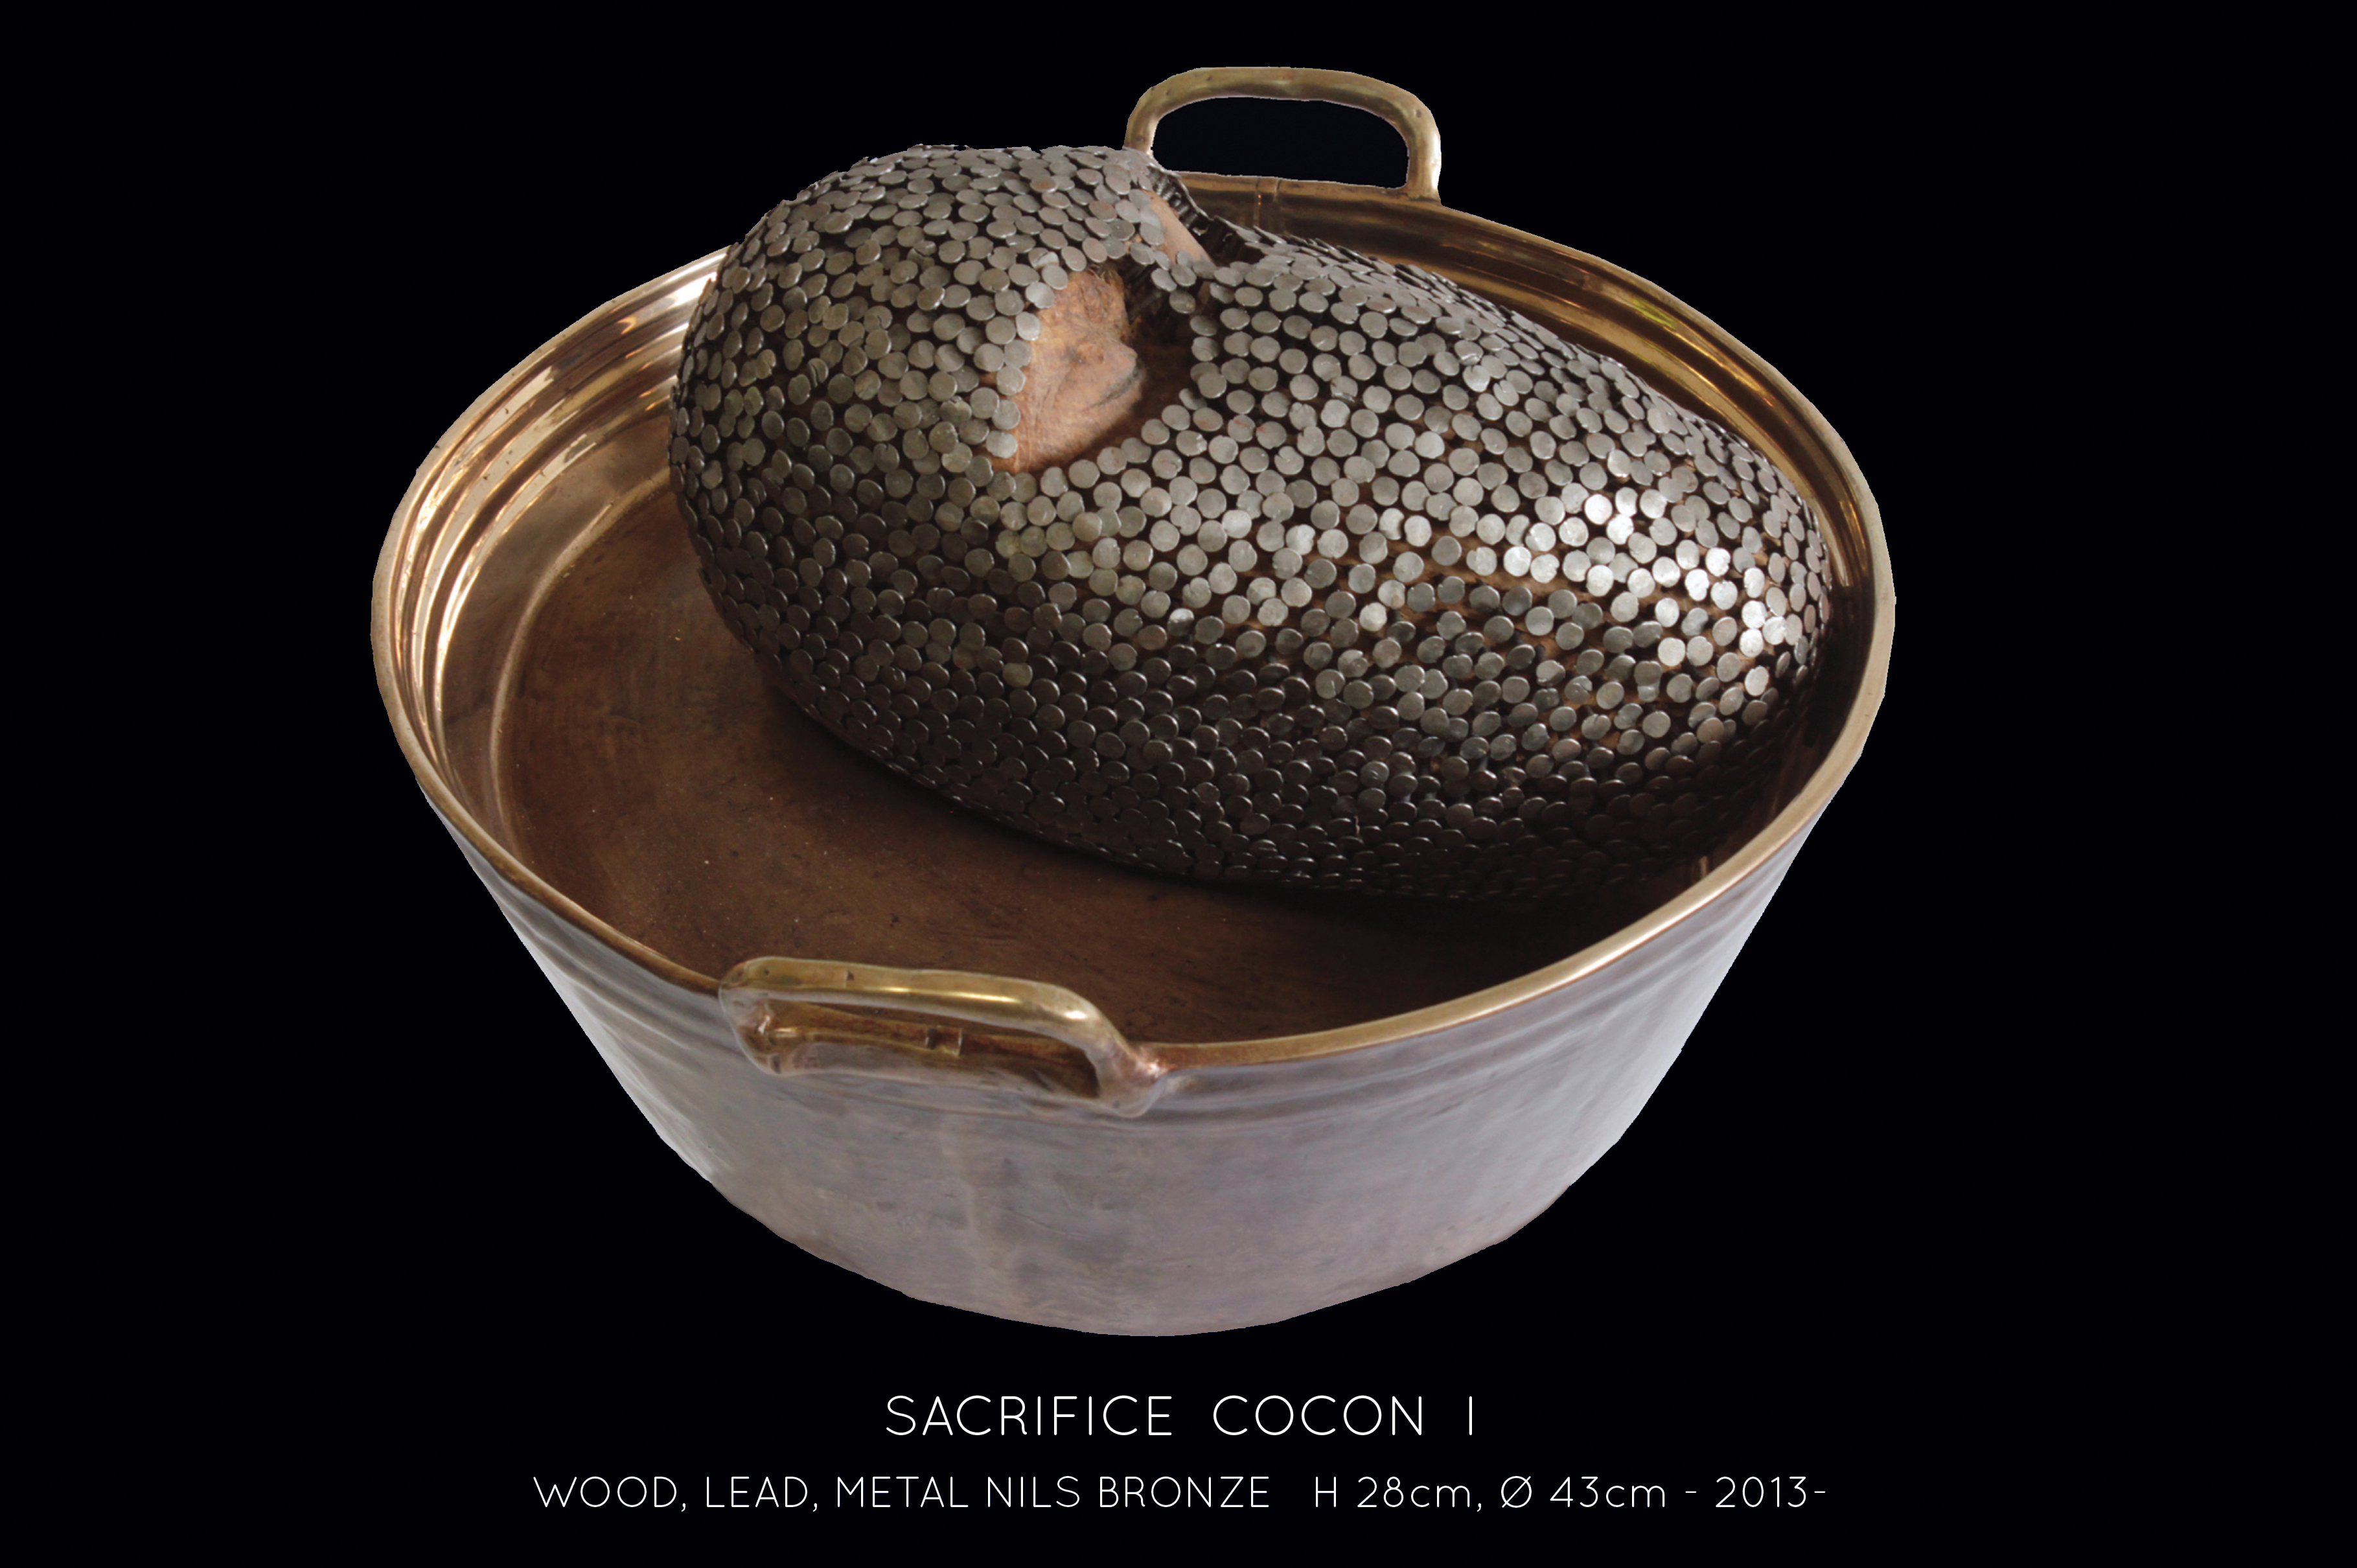 01 The cycle of sacrifice; COCON I